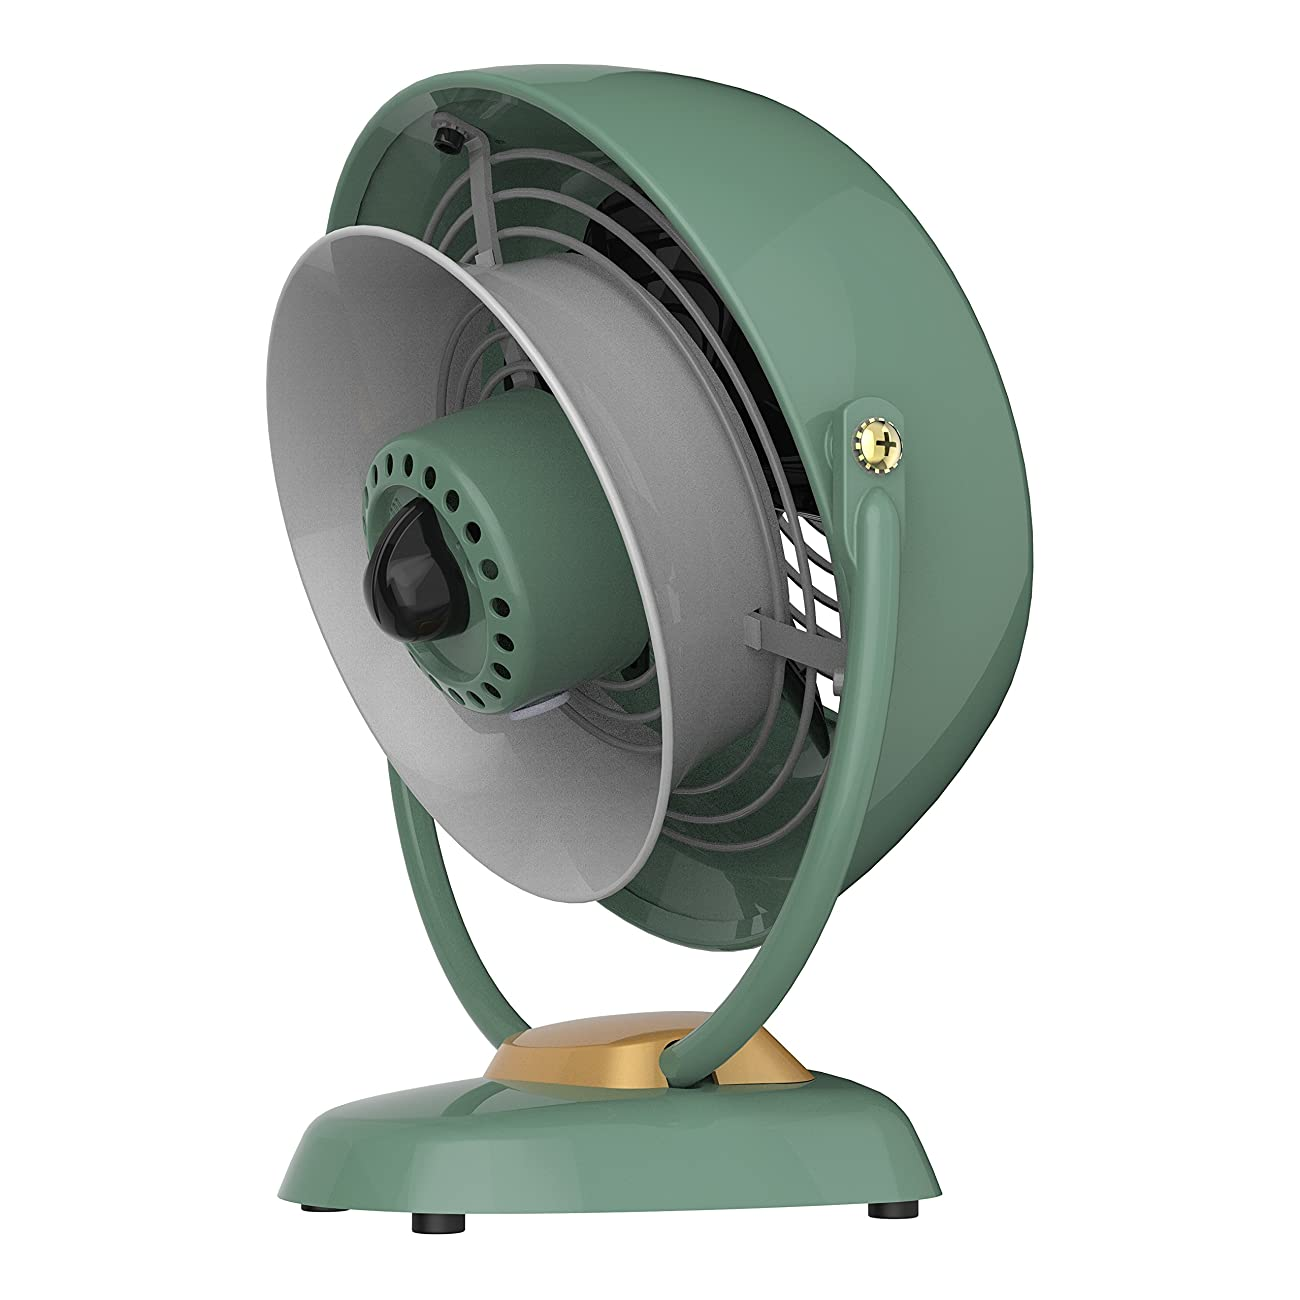 Vornado VFAN Jr. Vintage Air Circulator, Green 2